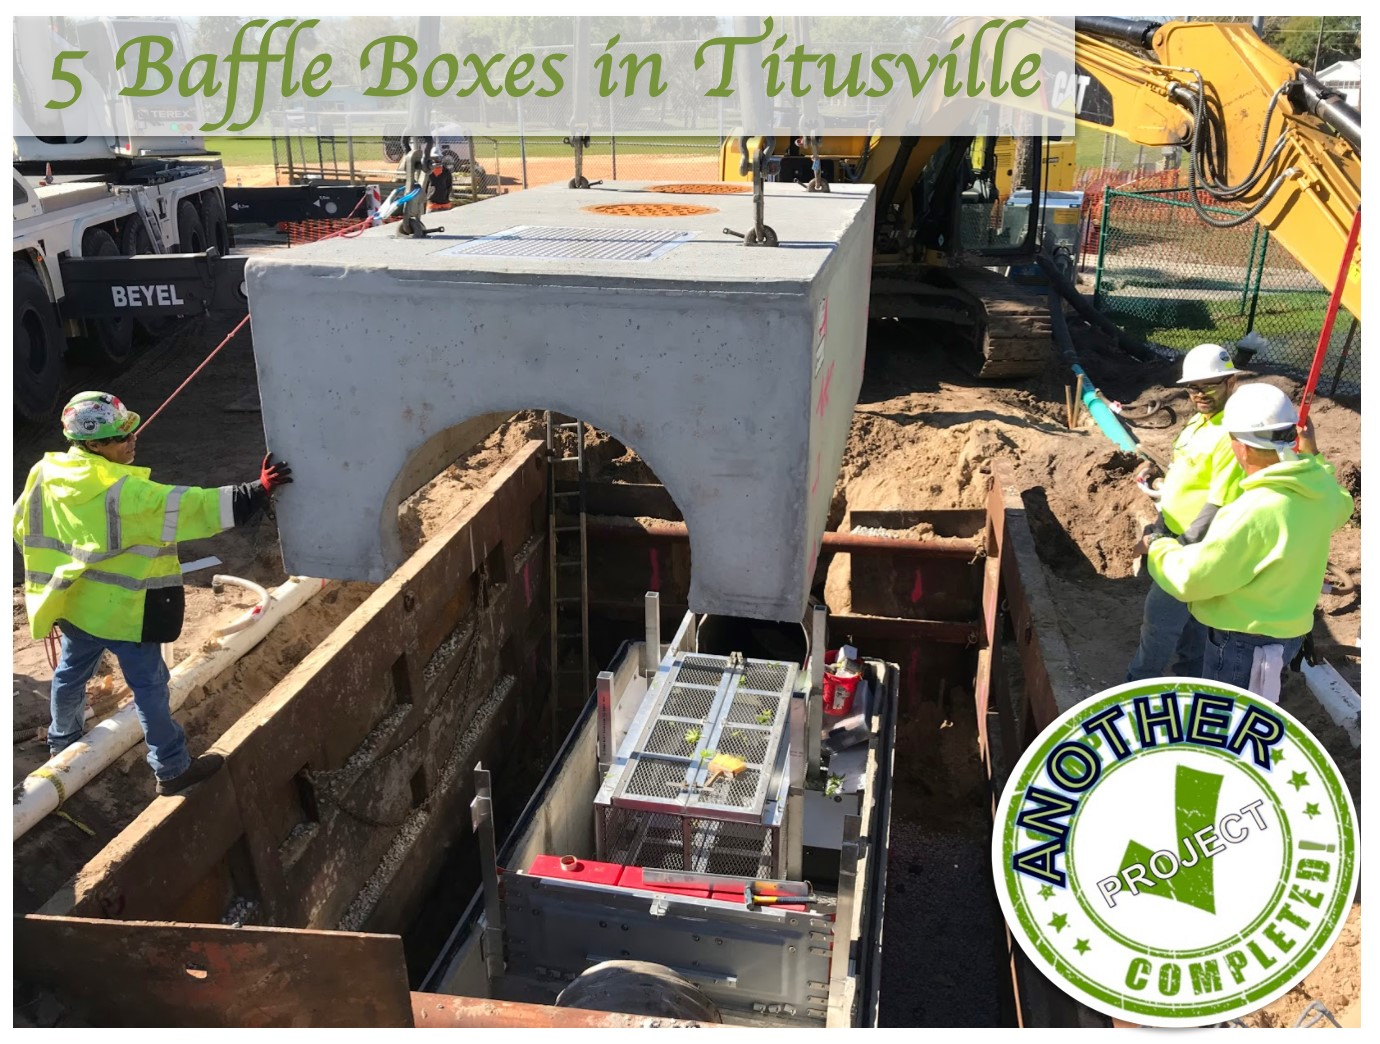 Baffle box projects in Titusville